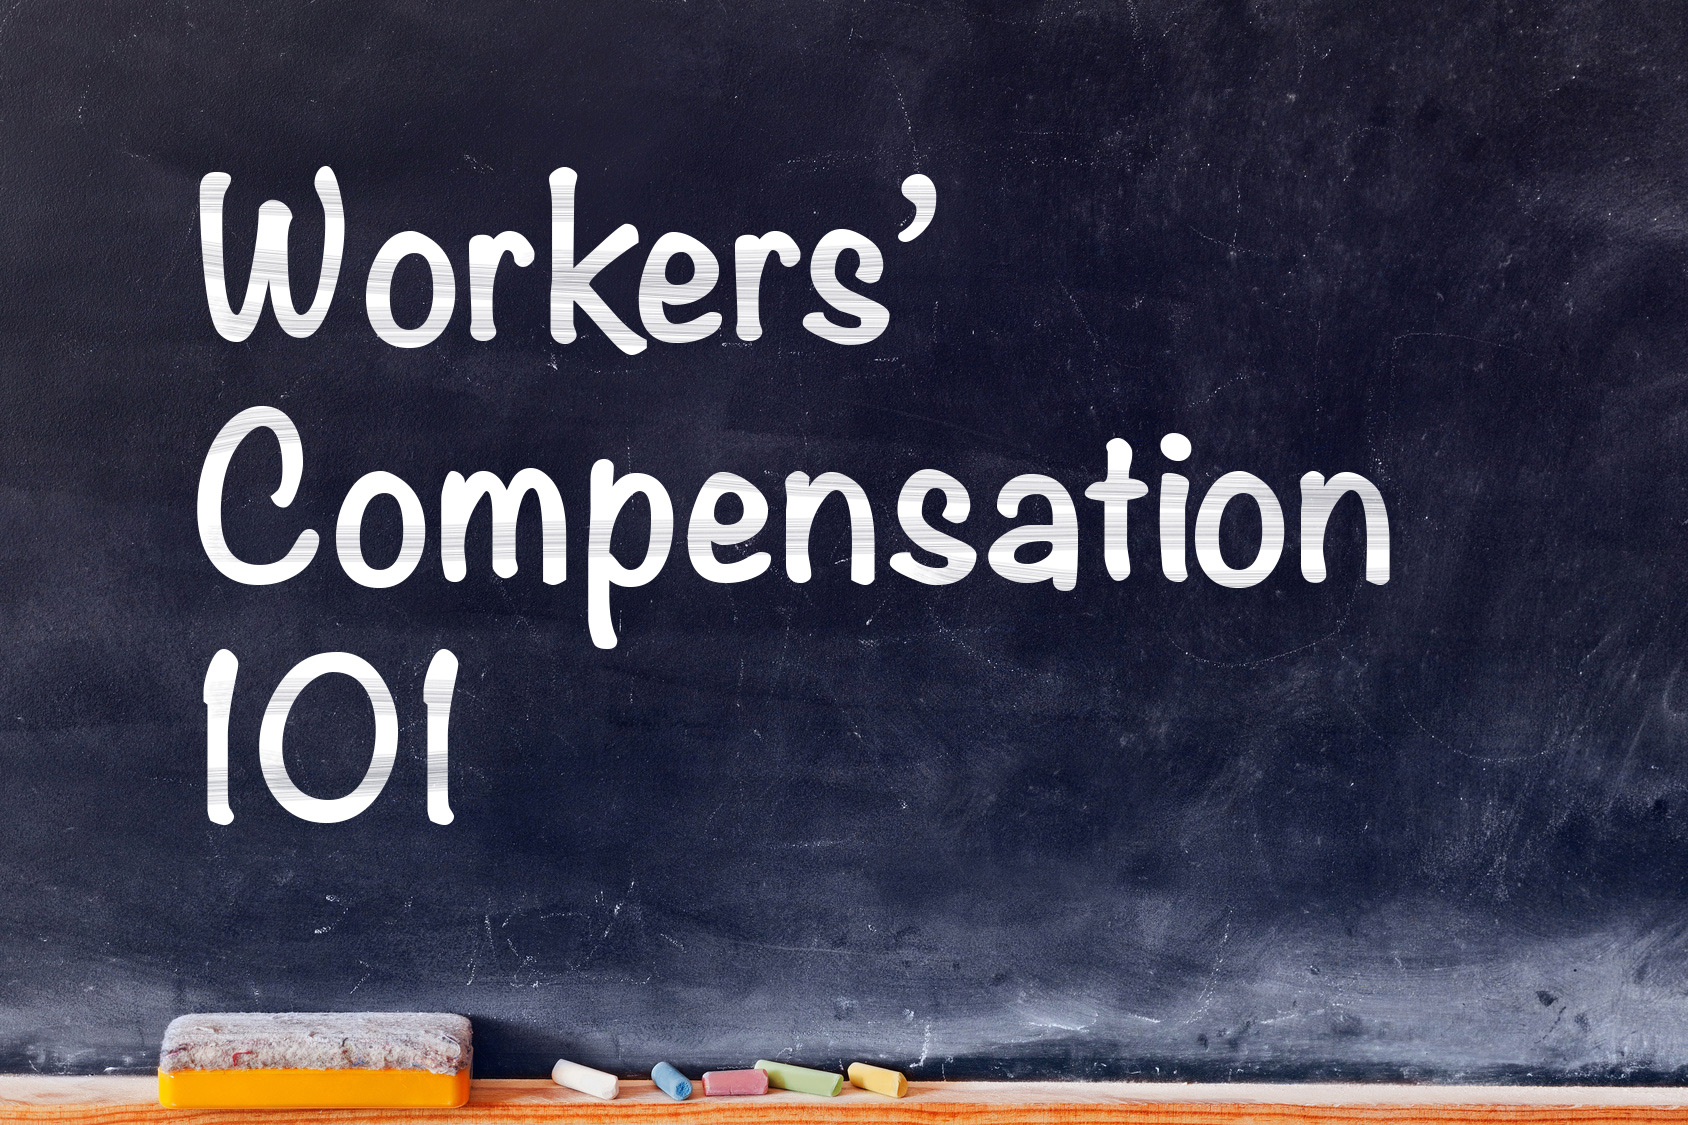 Workers Compensation Insurance 101 is written on a chalkboard